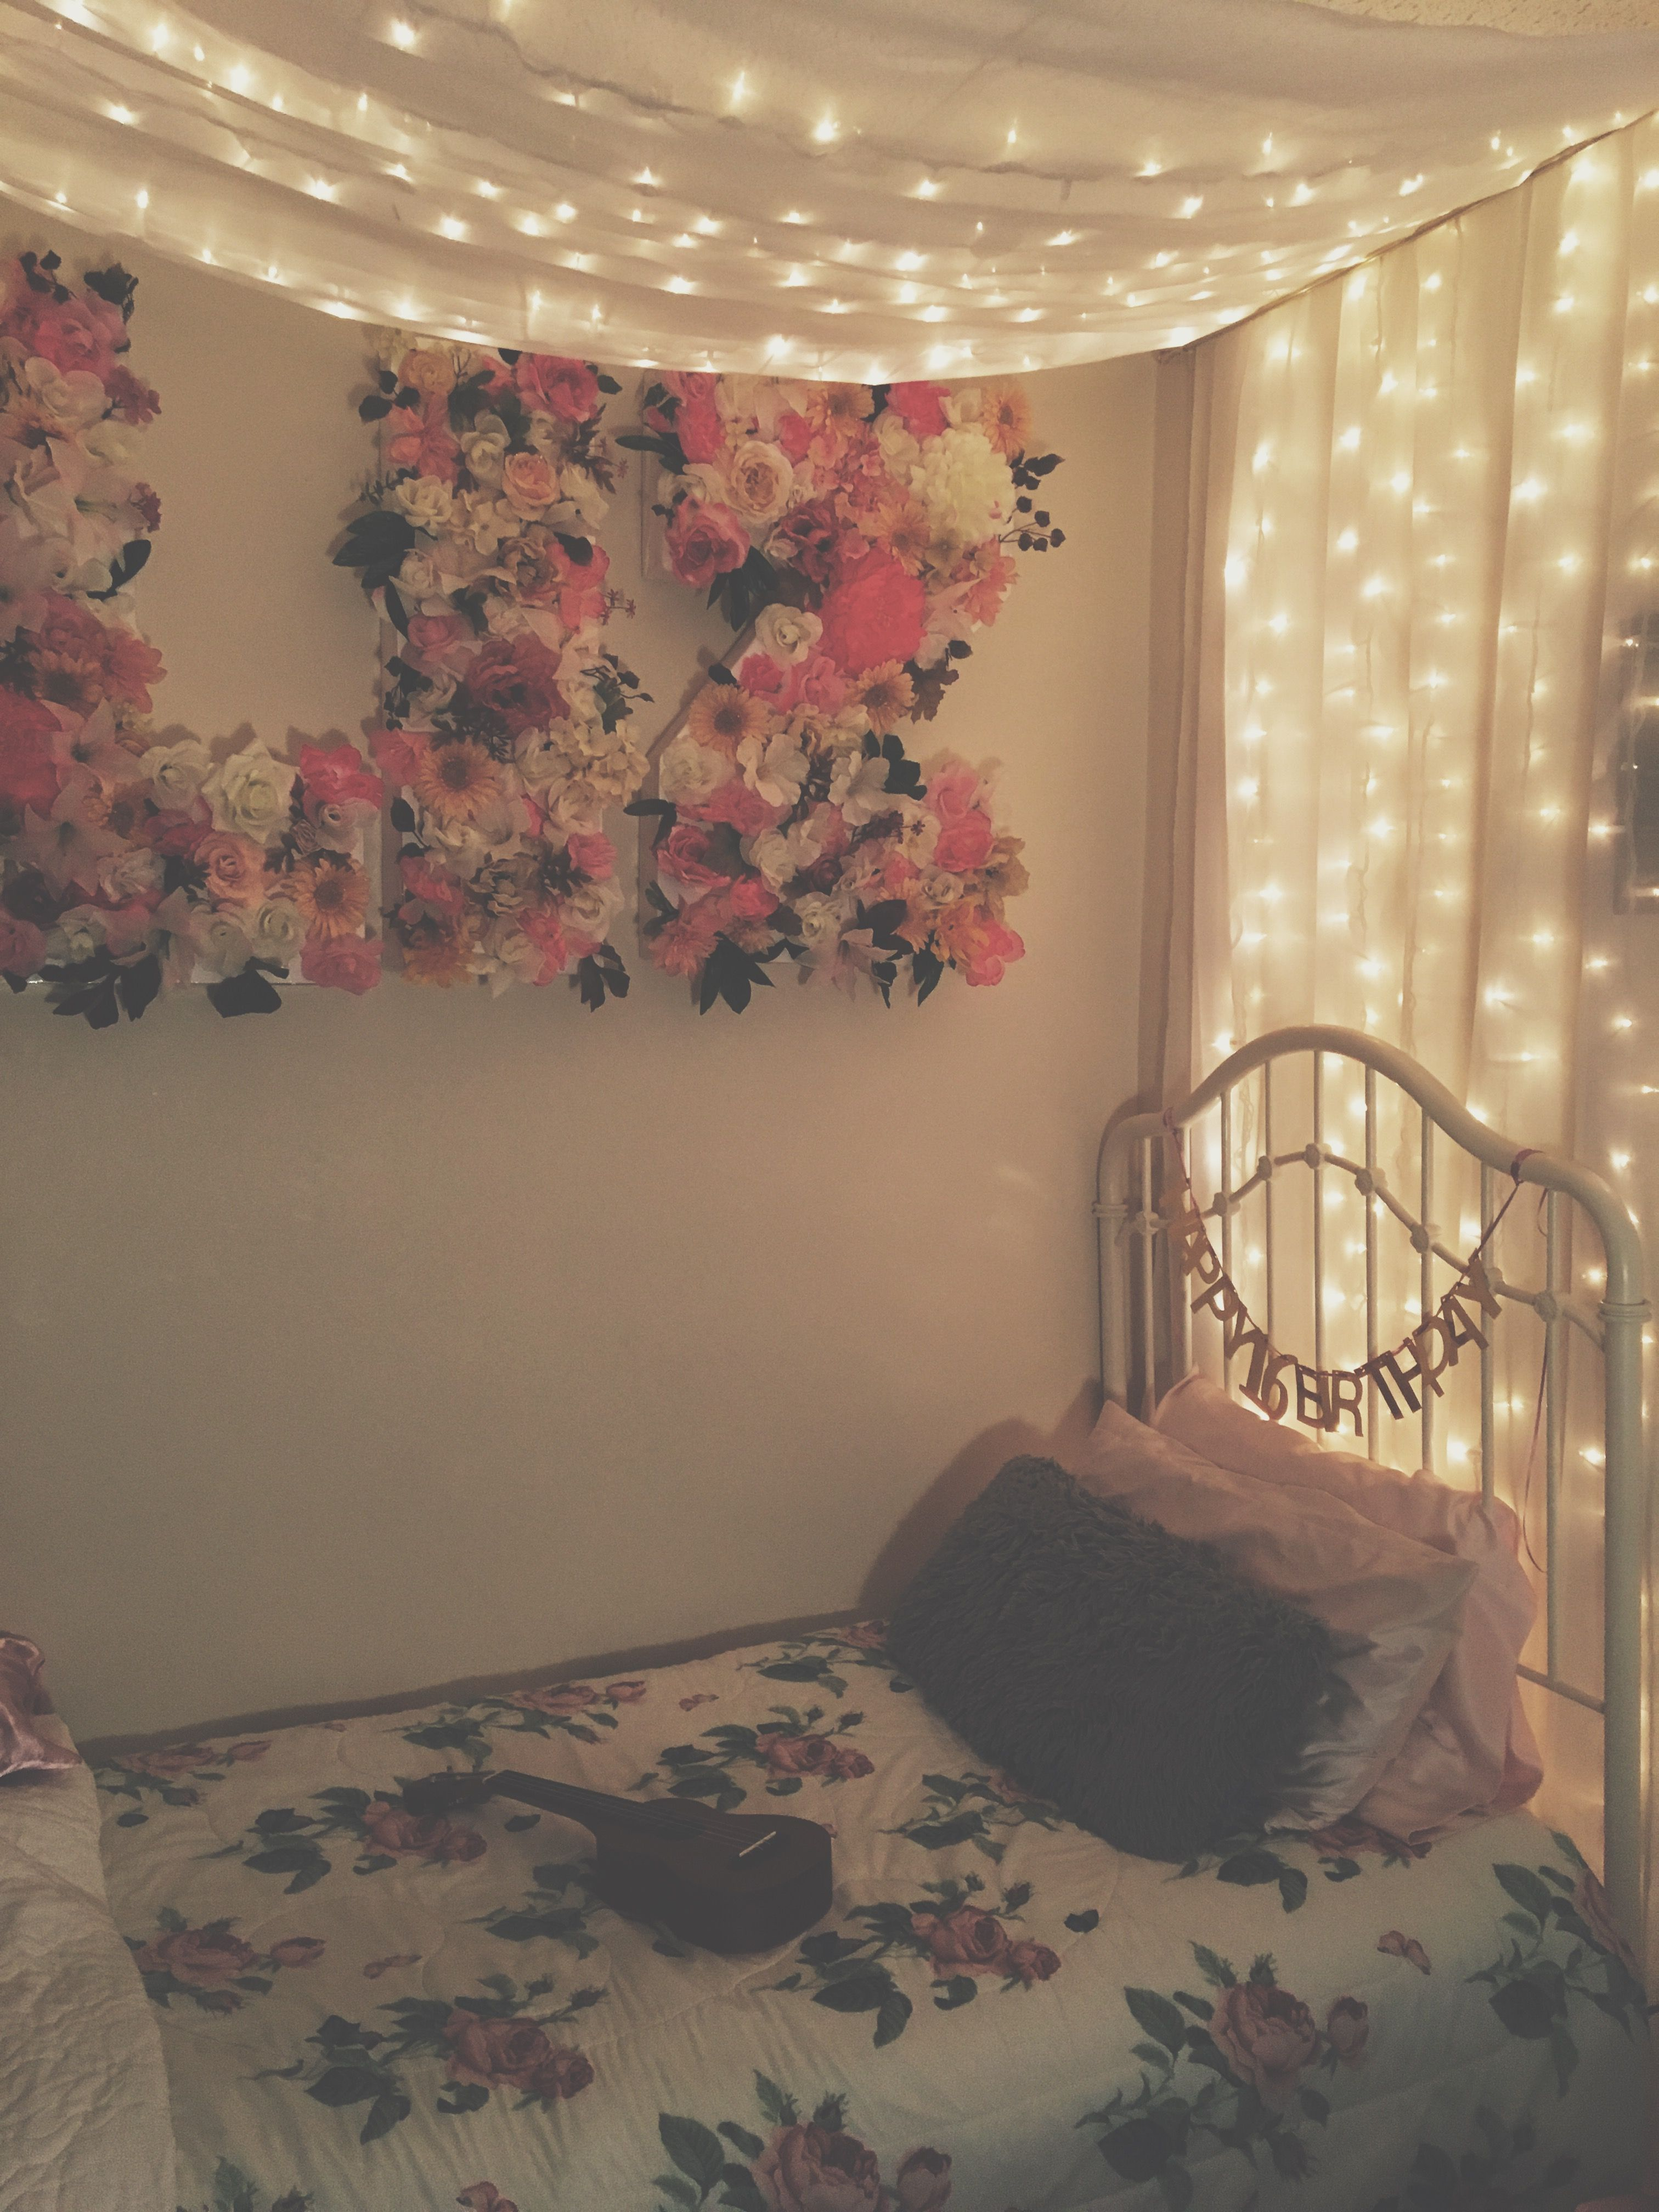 Vintage Fairy Lights Aesthetic